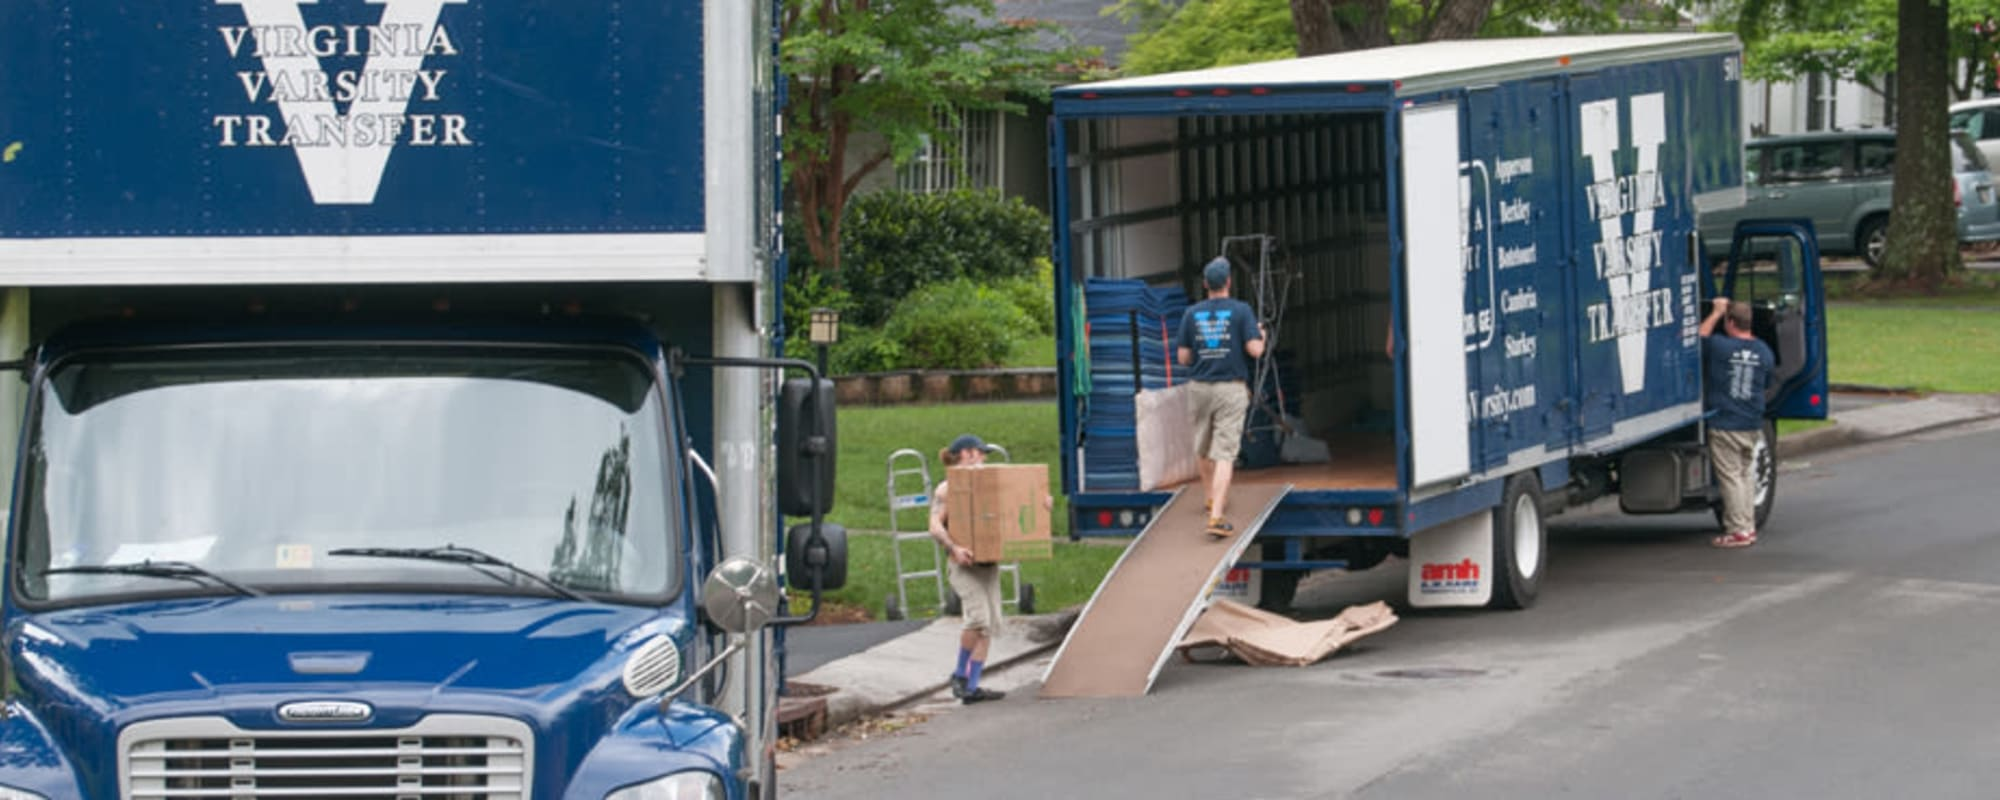 Local and long-distance movers, at Virginia Varsity Transfer in Salem, Virginia